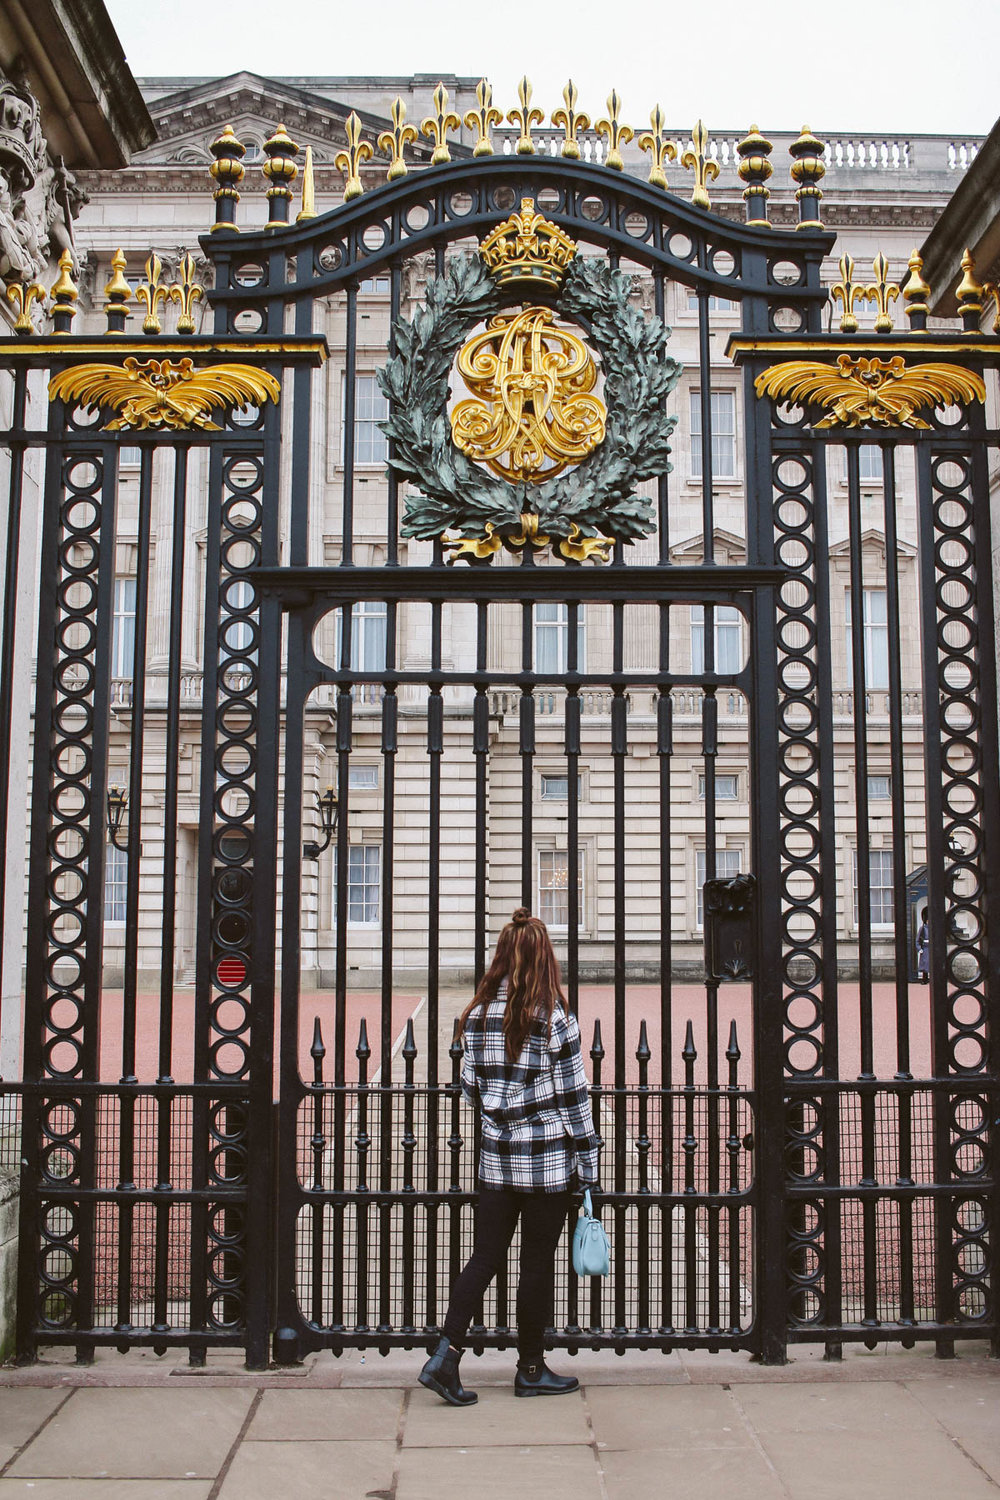 Buckingham Palace, London. Travel to London. Top things to do in London England